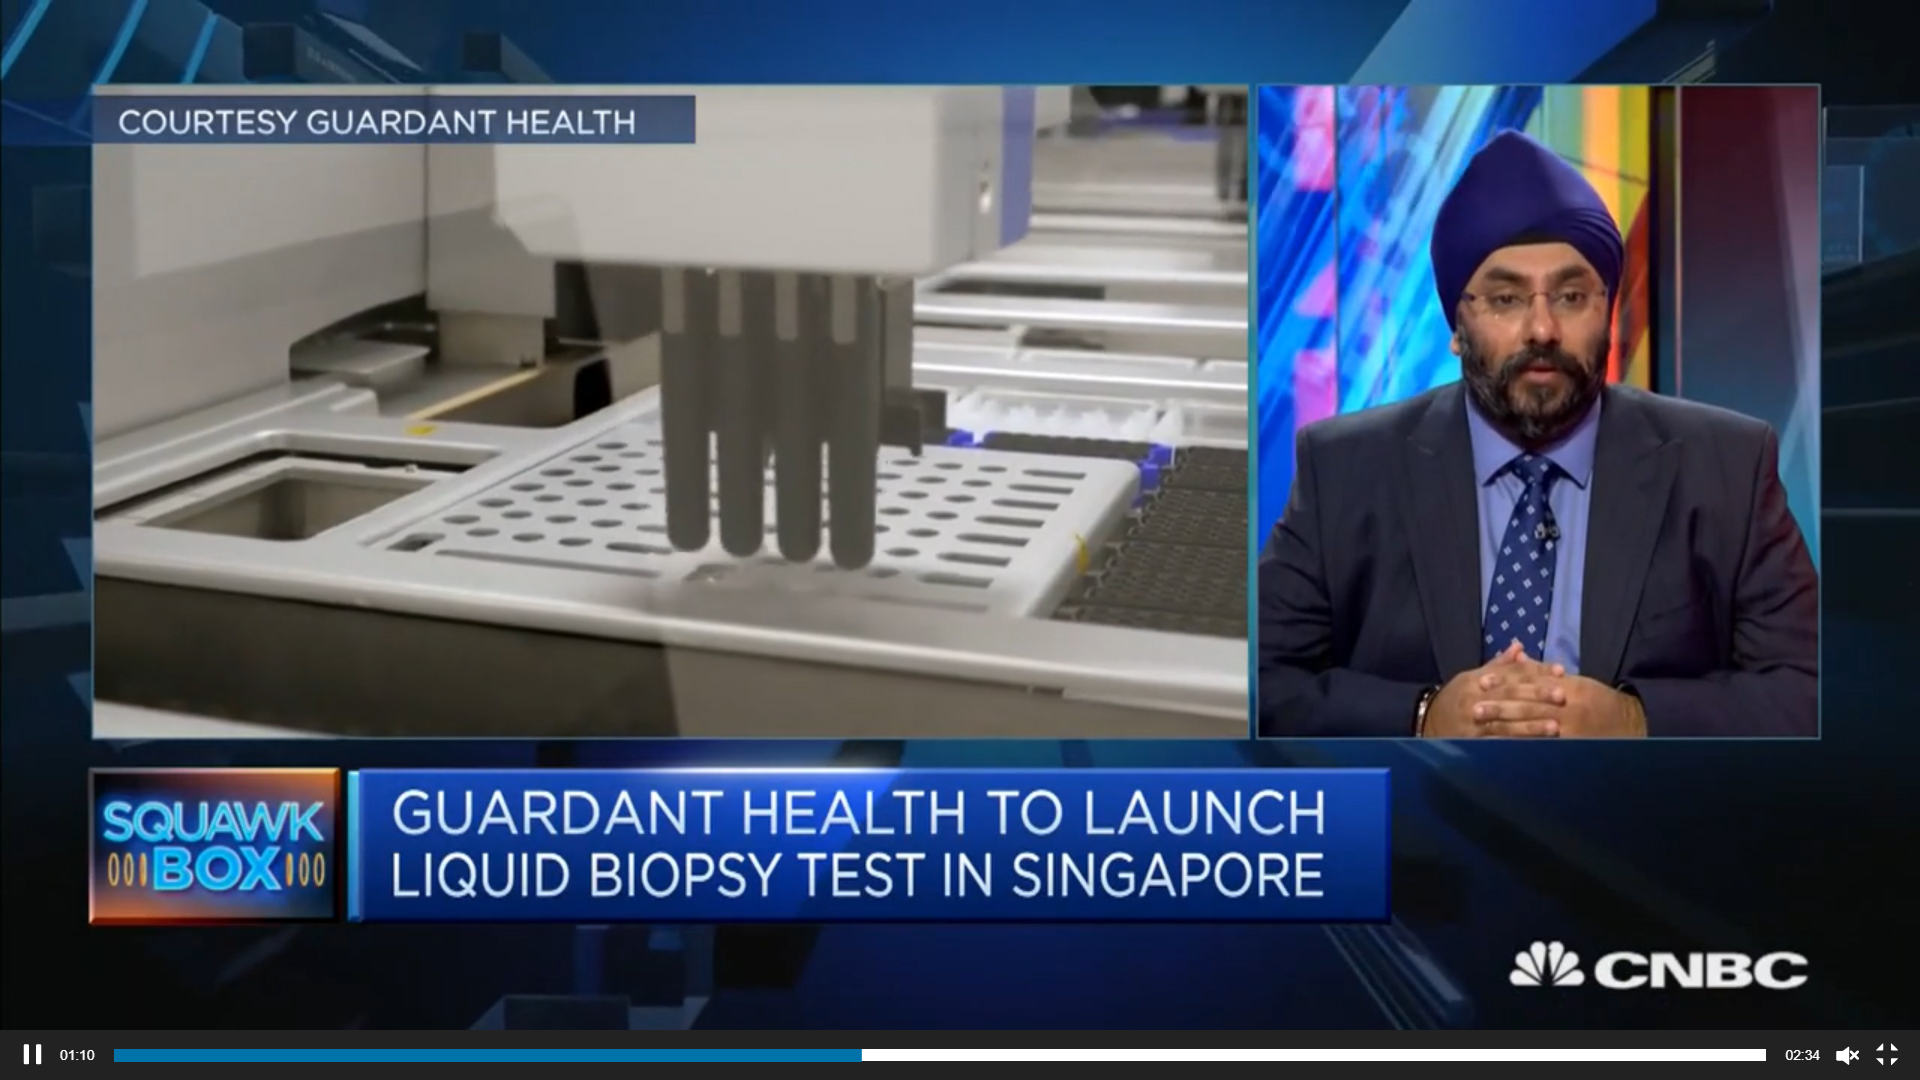 Asia has 'Tremendous Growth' opportunities: Guardant Health AMEA